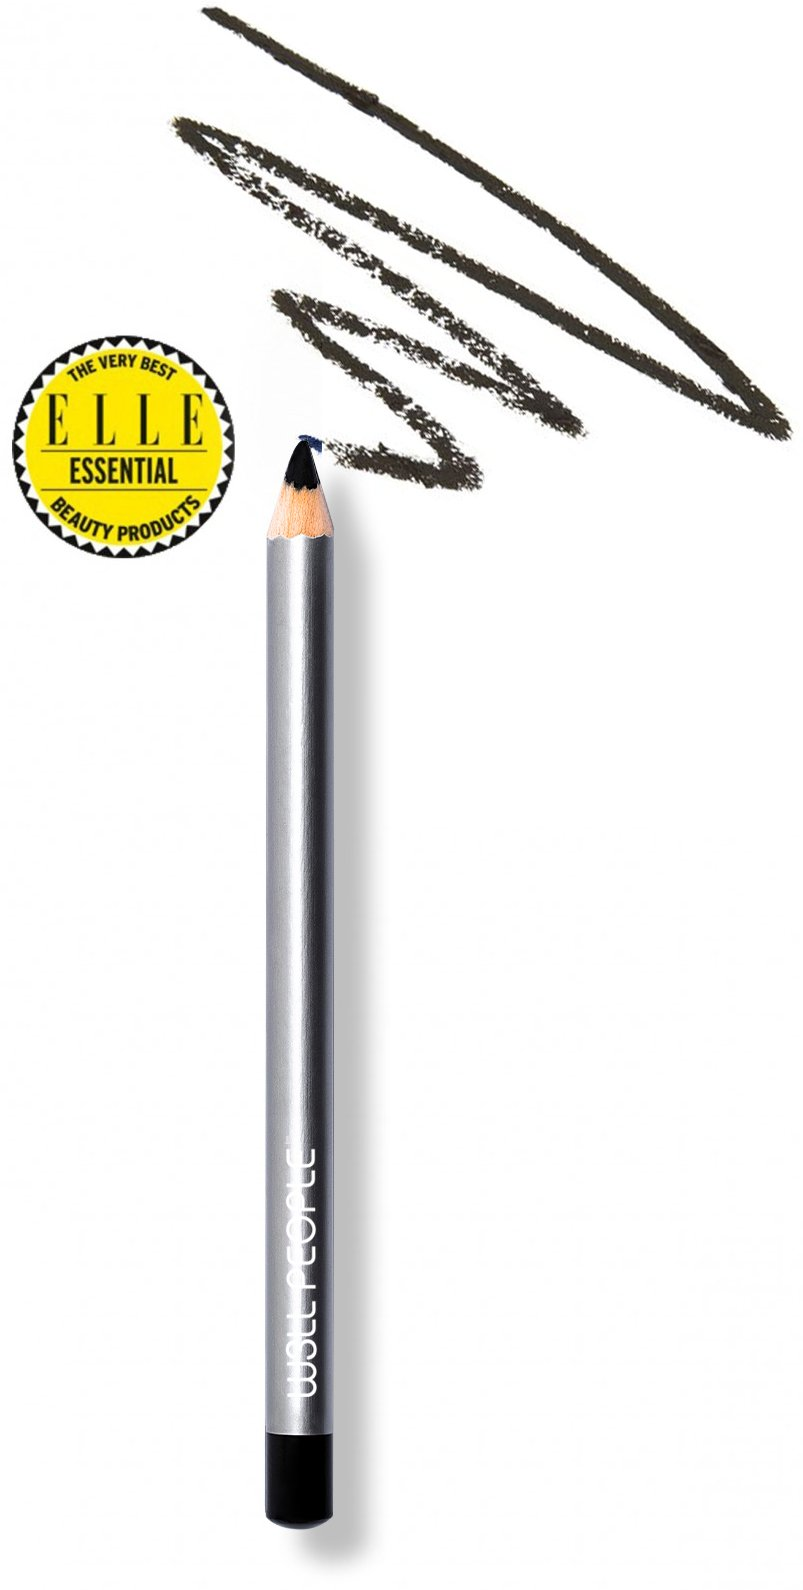 W3LL PEOPLE - Hypnotist Eyeliner (Black)